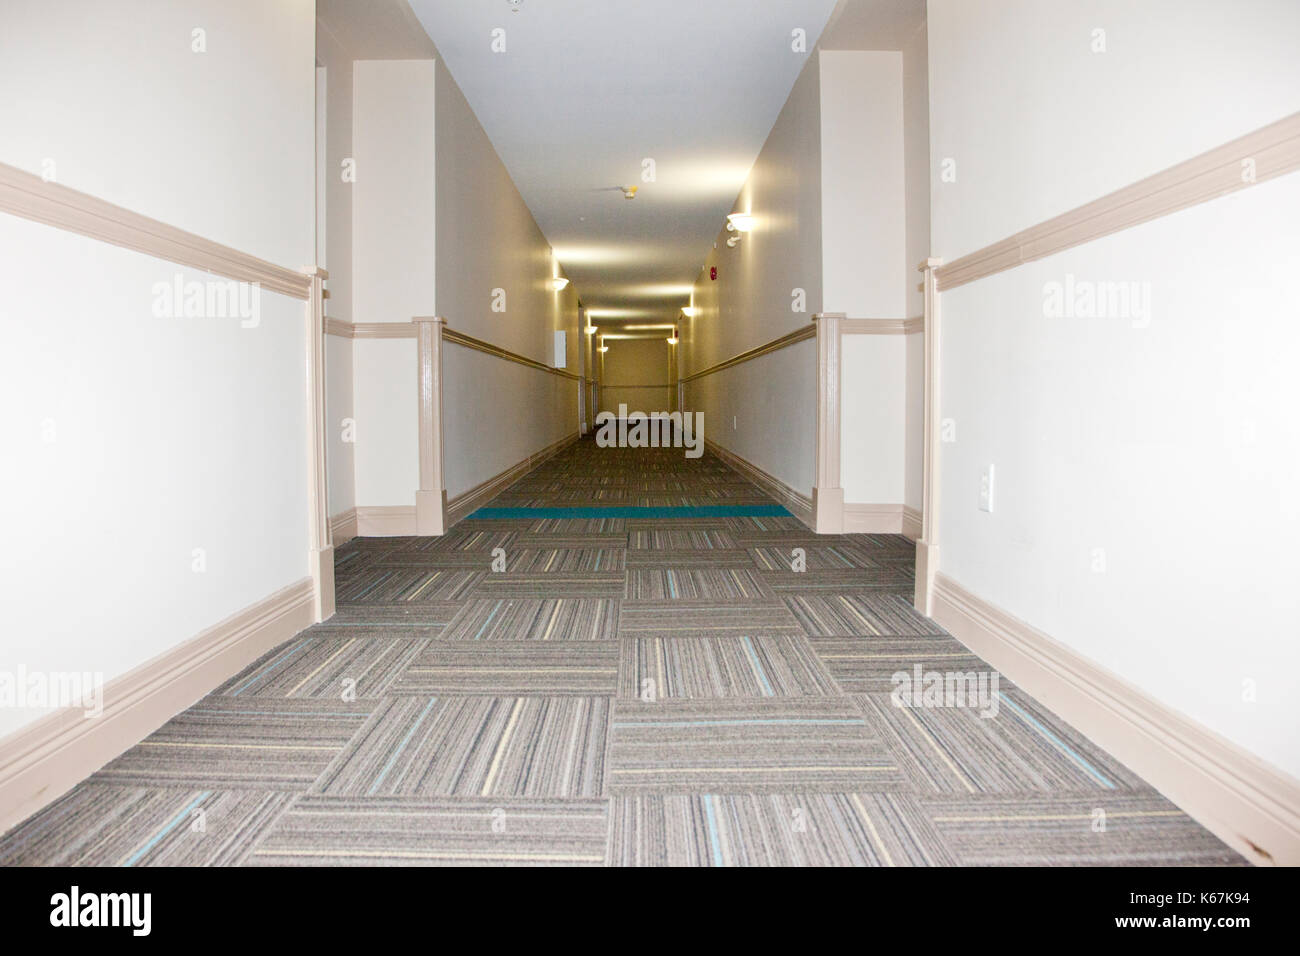 Apartment Building Hallway High Resolution Stock Photography and